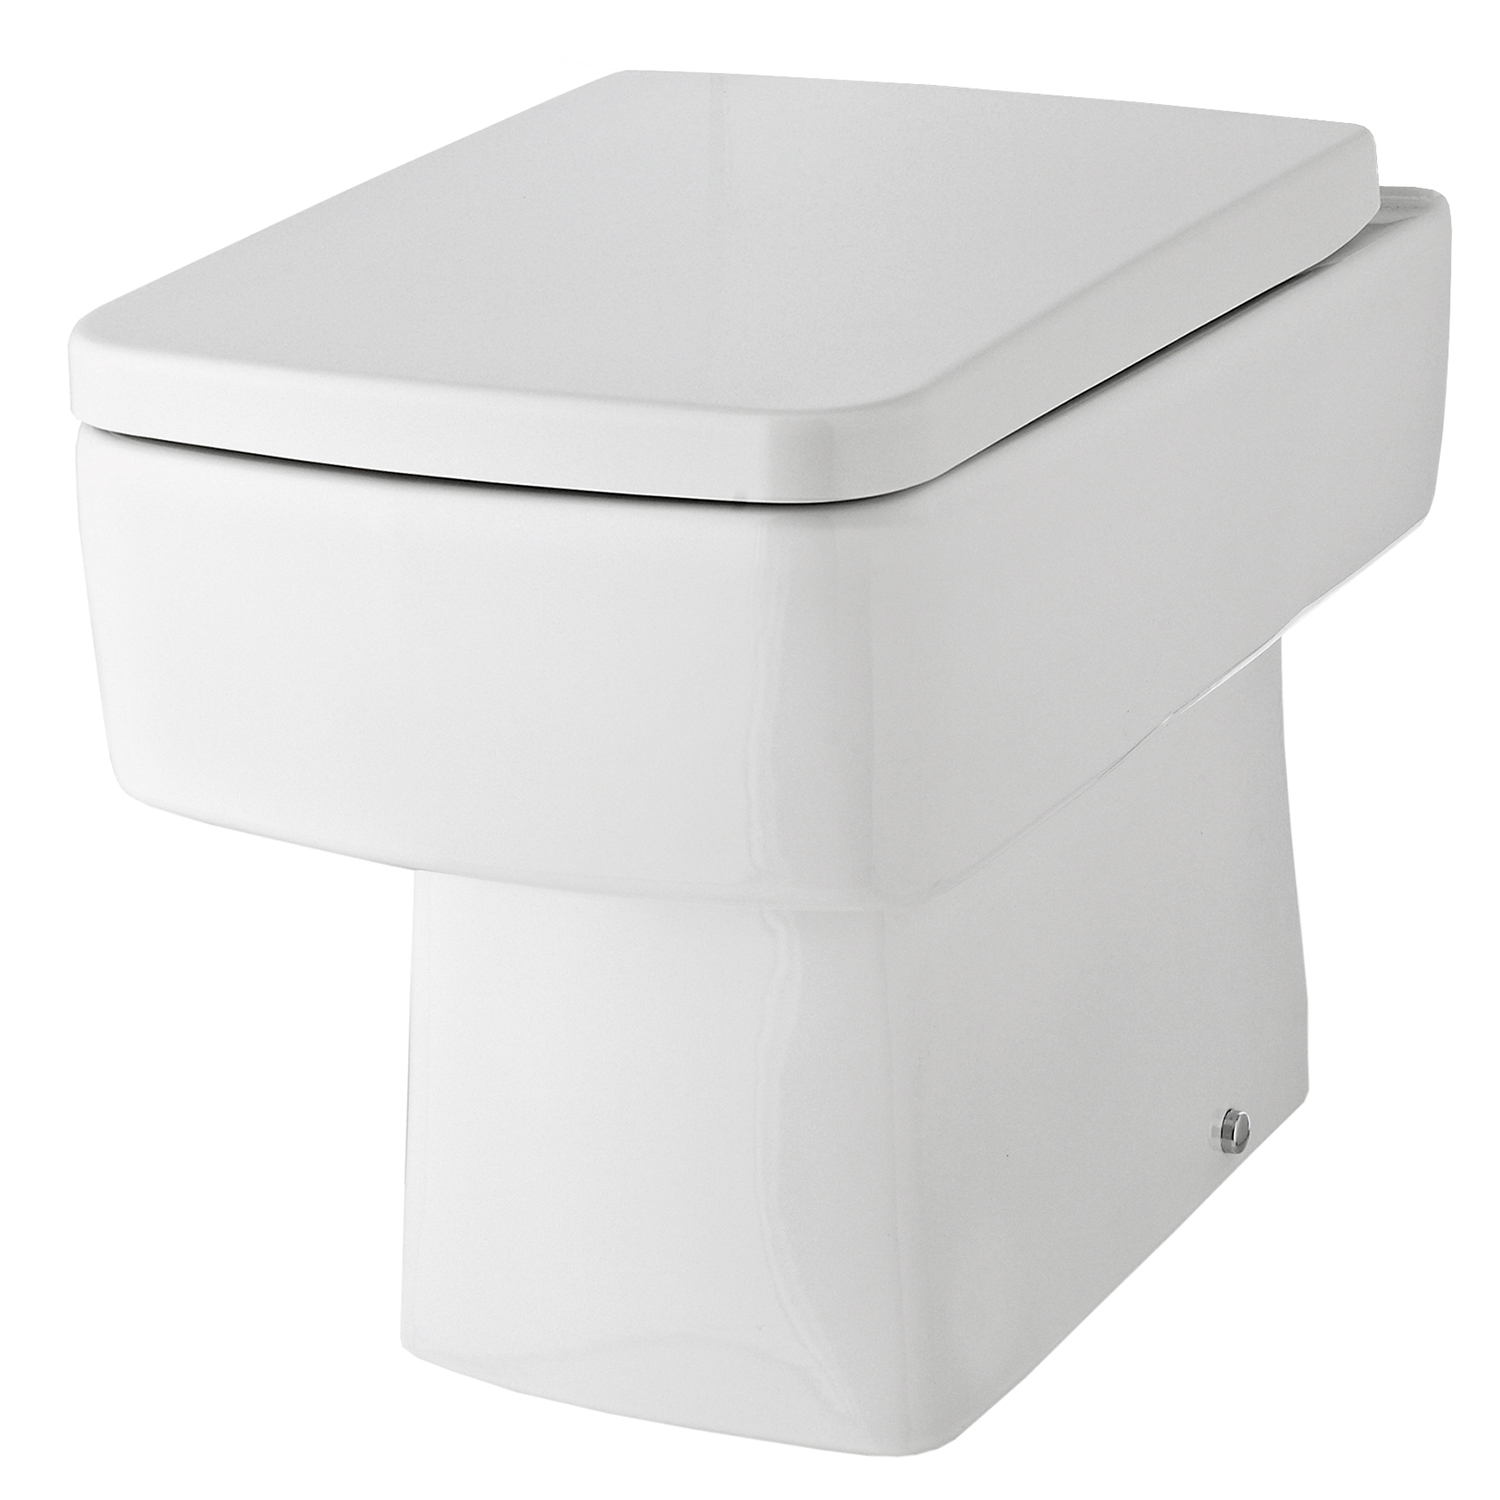 black square toilet seat. Premier Square Thermoplastic Toilet Seat  Top Fix Quick Release Hinges White 1 NCH198 Various